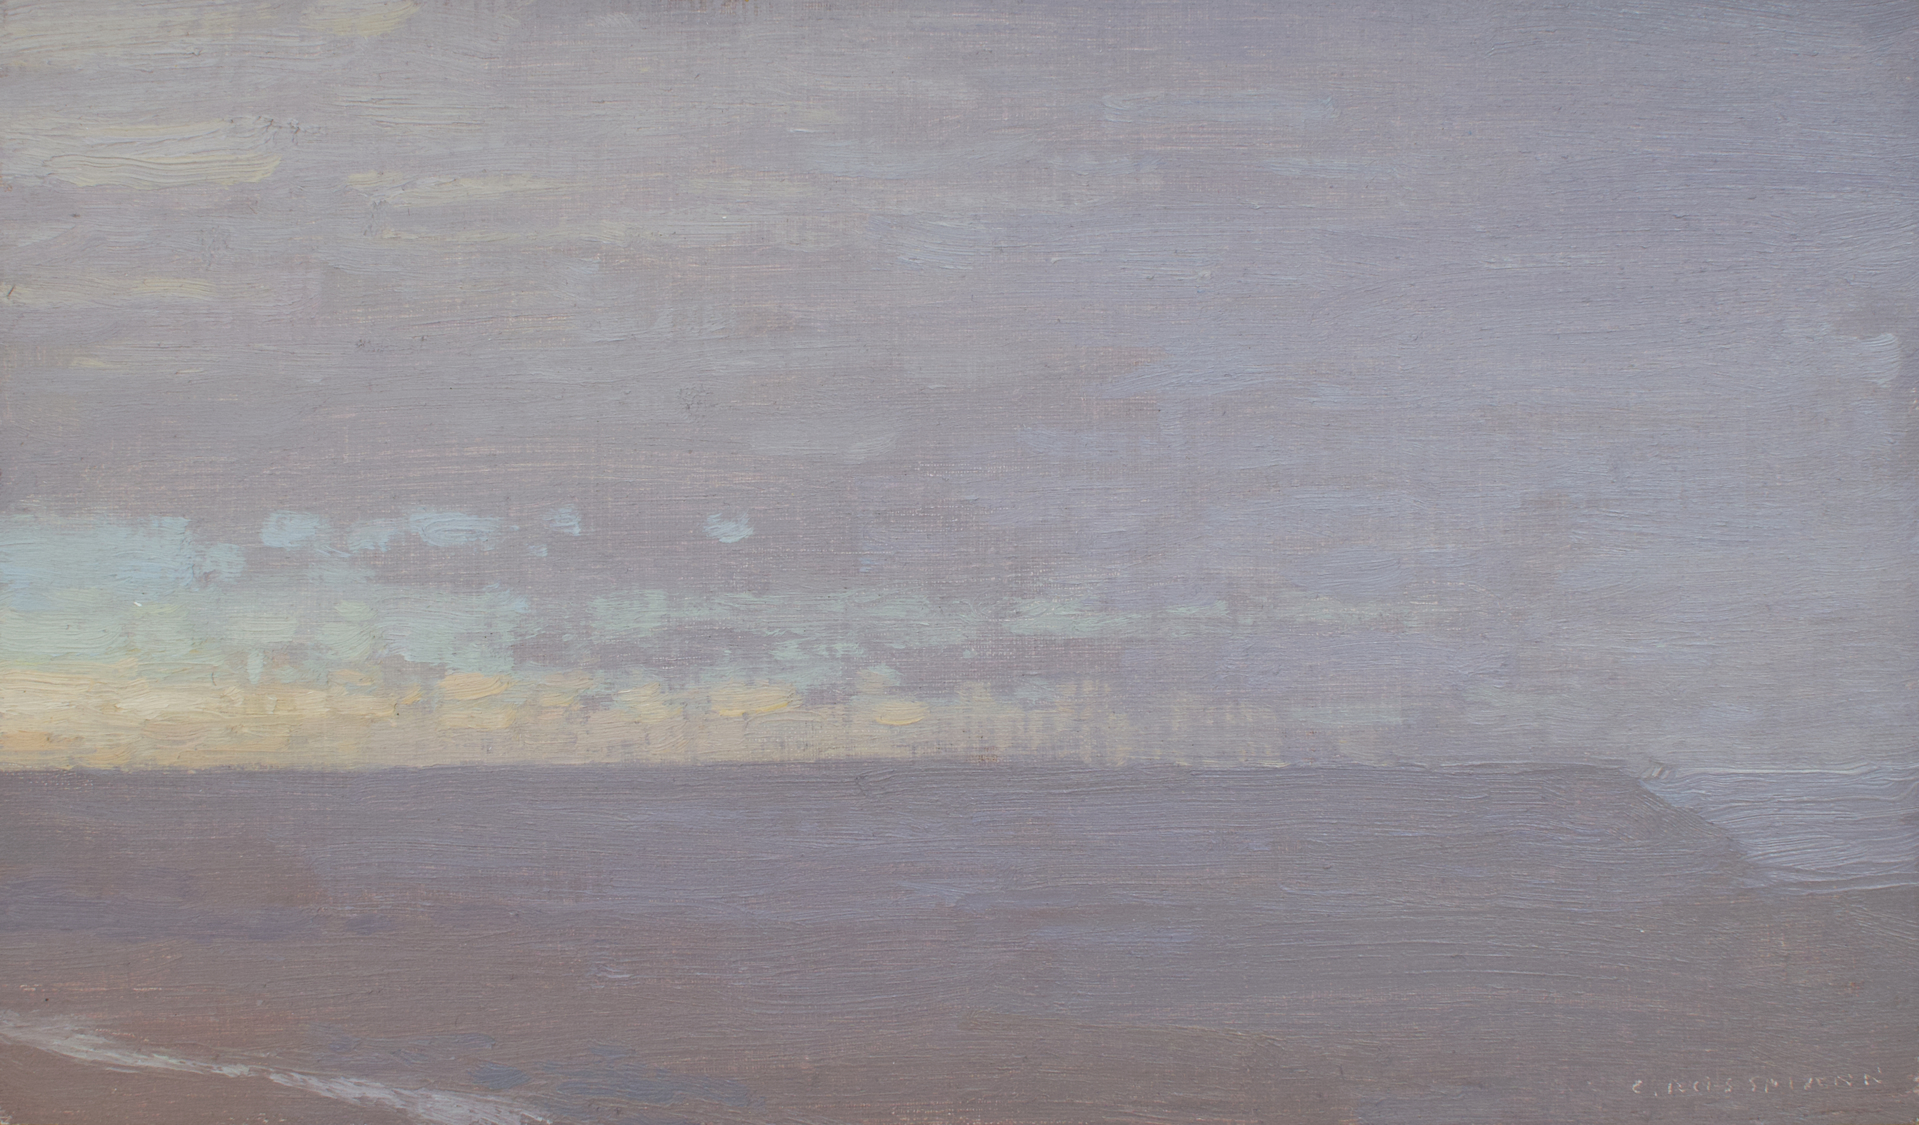 Rainy Morning View with River by David Grossmann